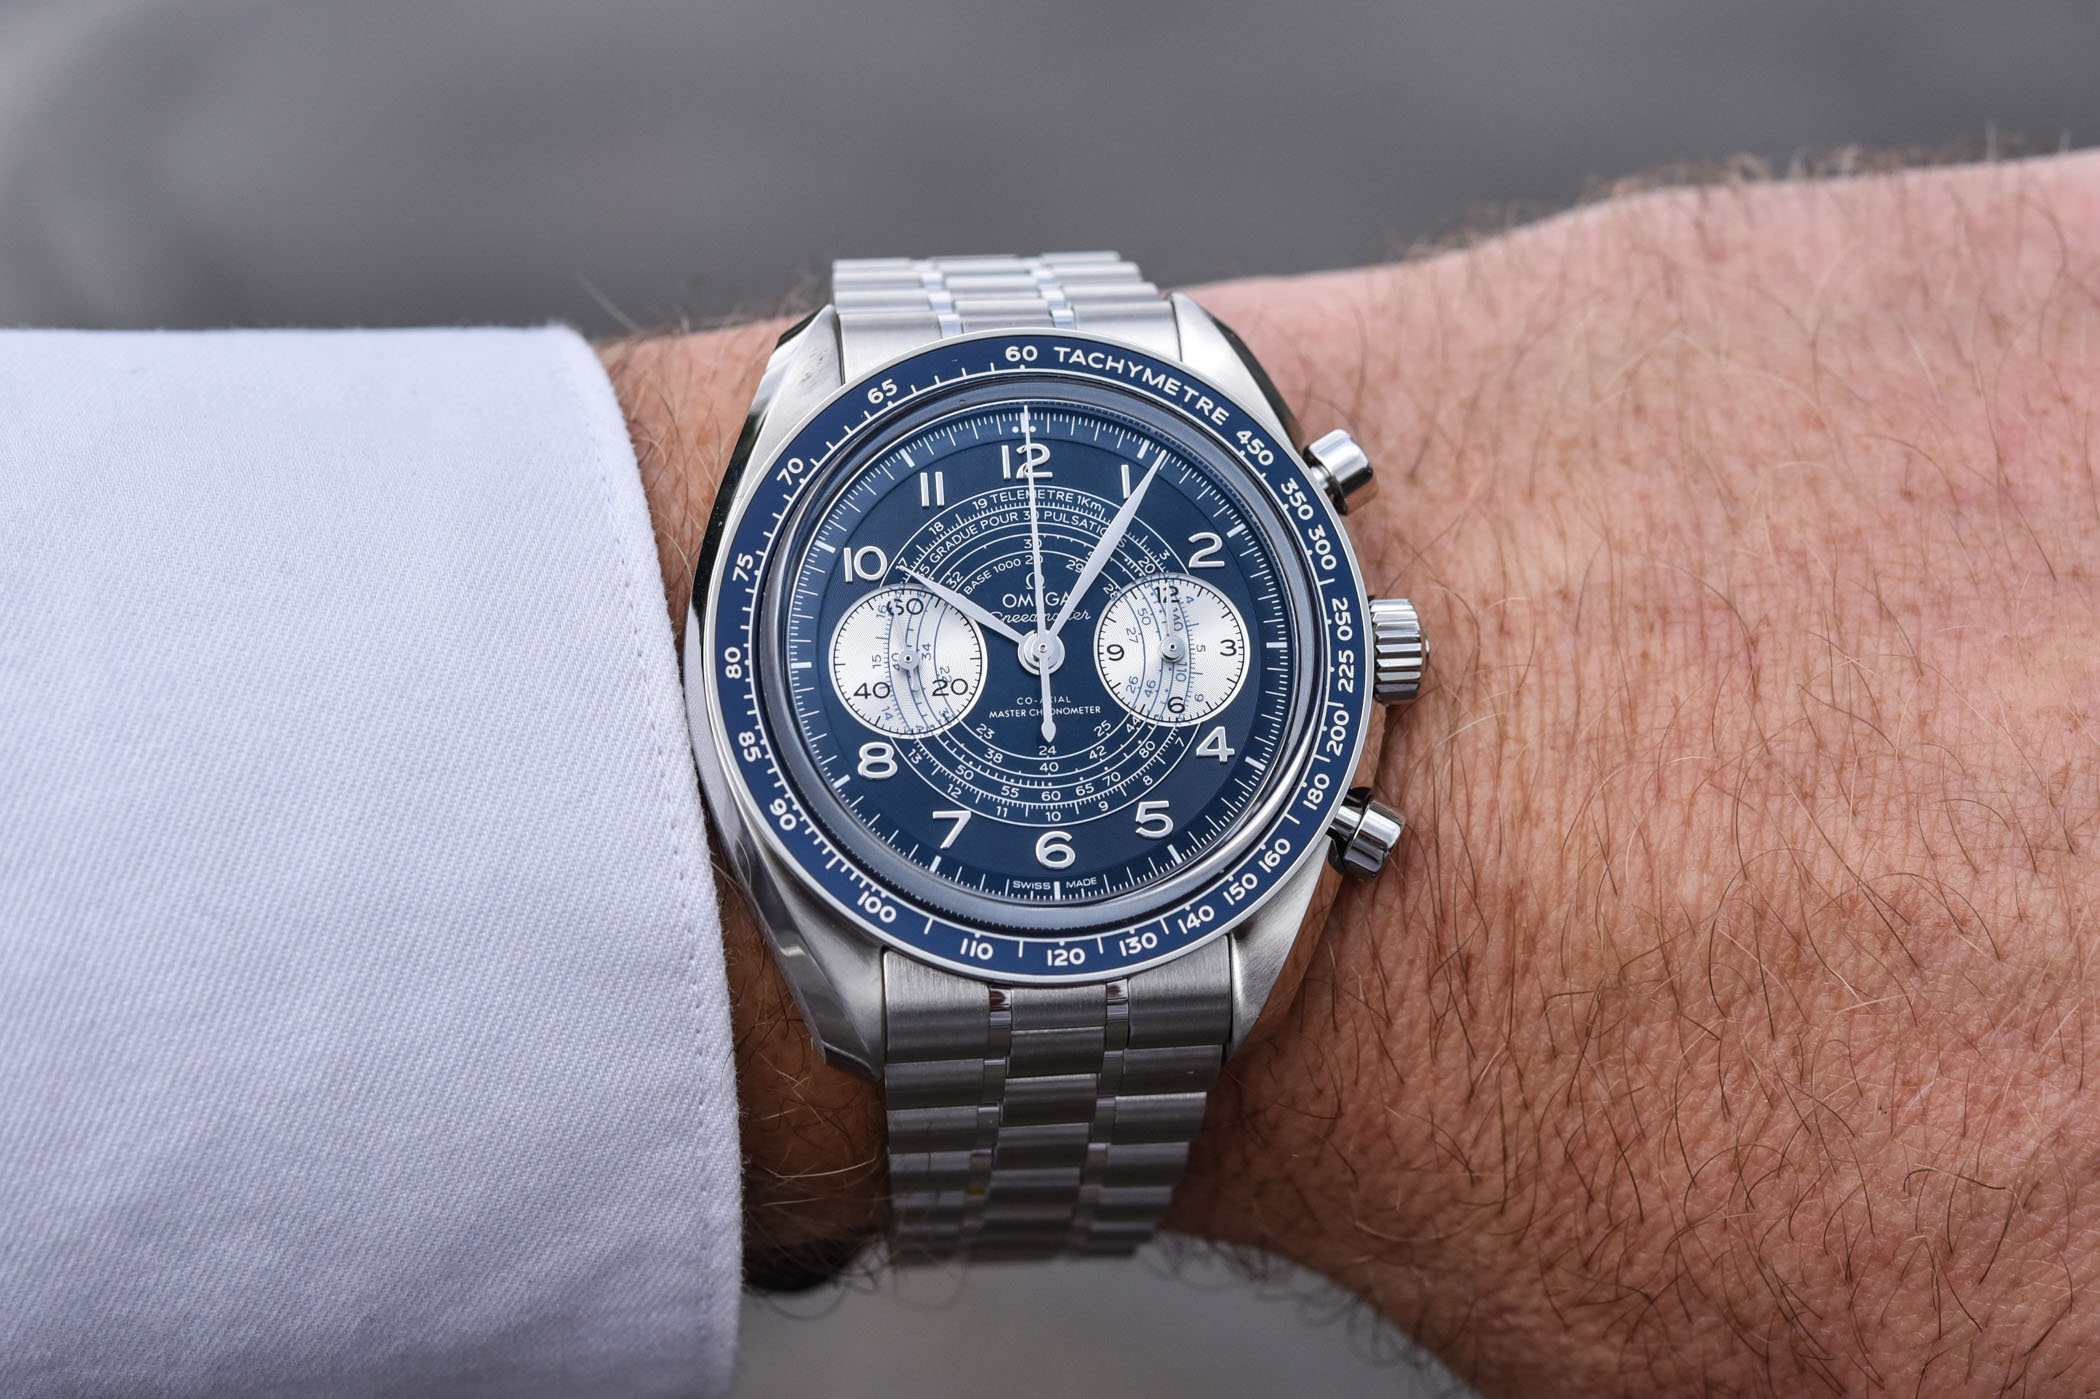 2021 Omega Speedmaster Chronoscope Collection review 329.30.43.51.03.001 13